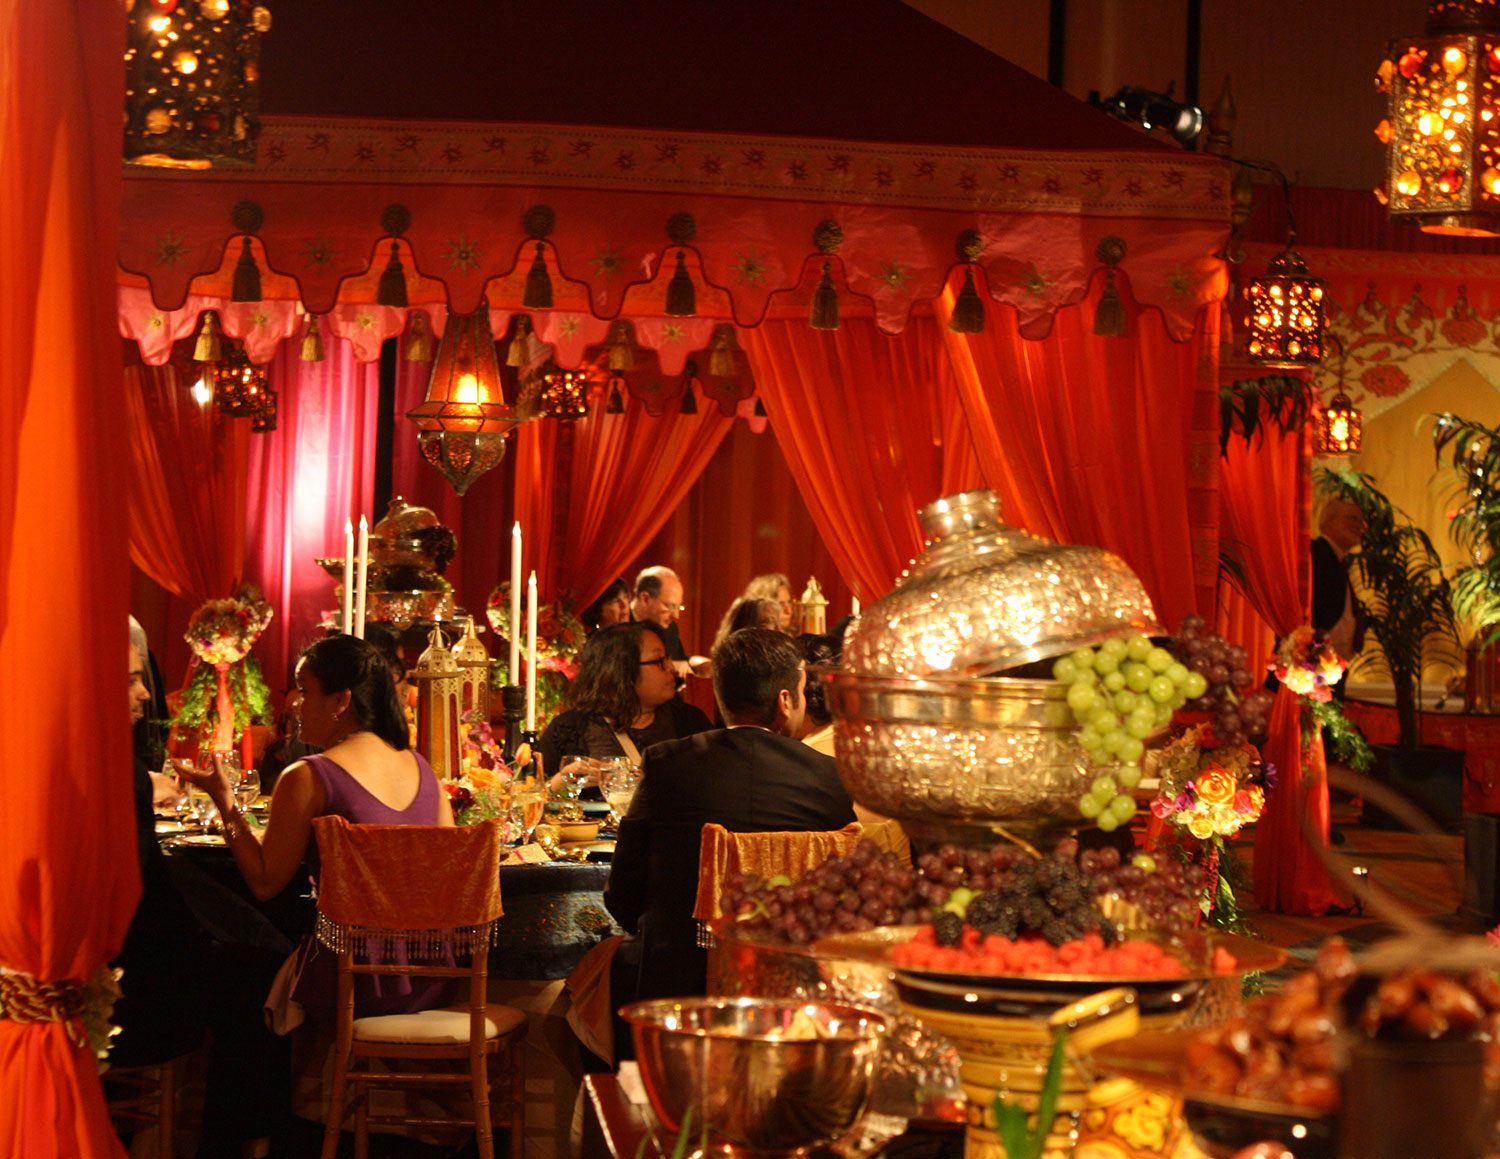 raj-tents-moroccan-theme-ballroom-transformation.jpg